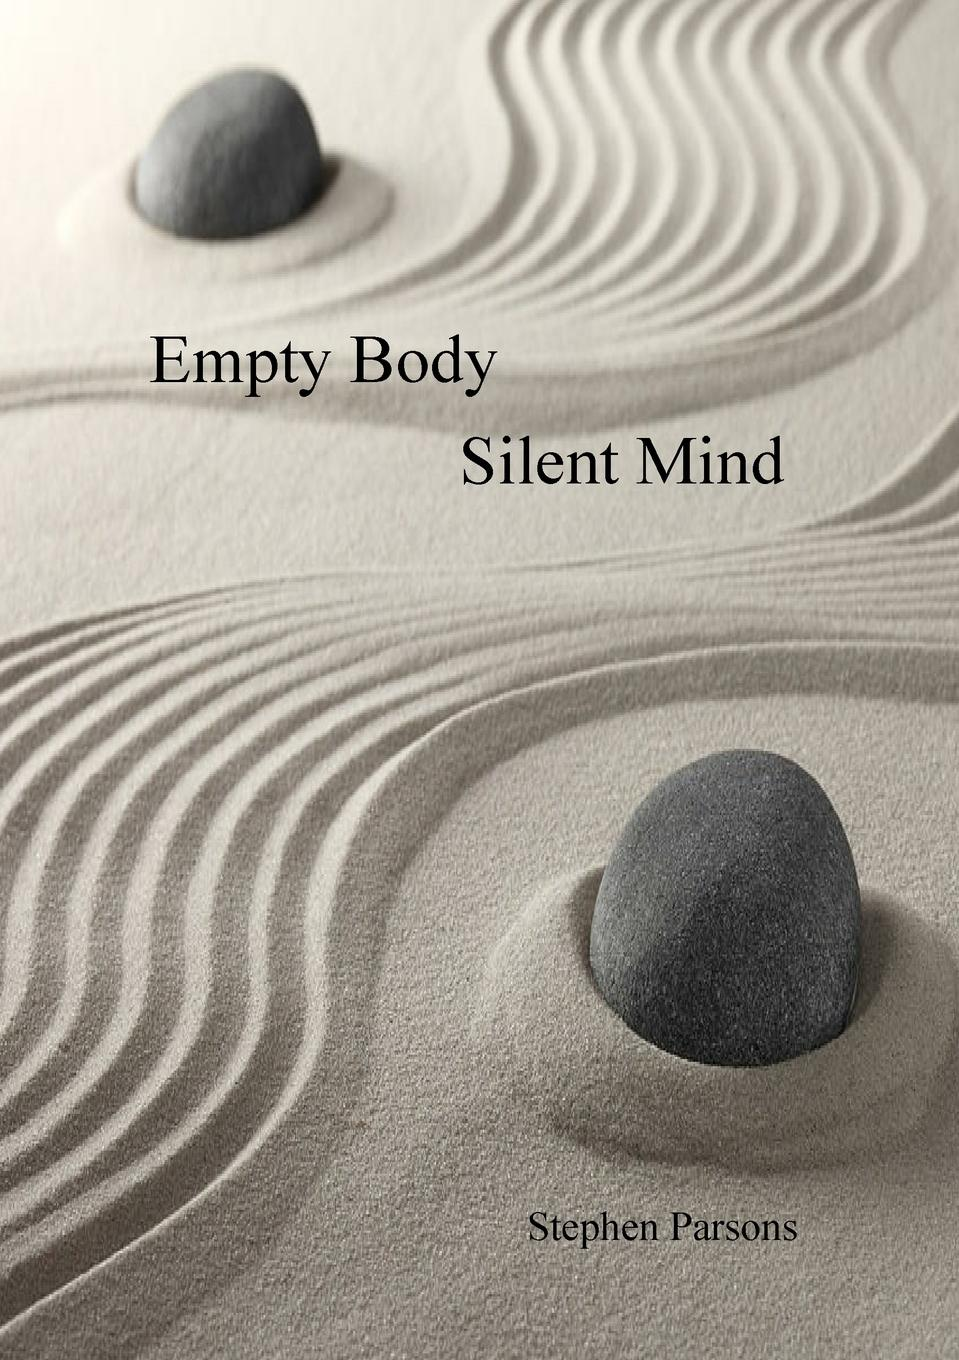 stephen parsons EMPTY BODY SILENT MIND if tomorrow comes